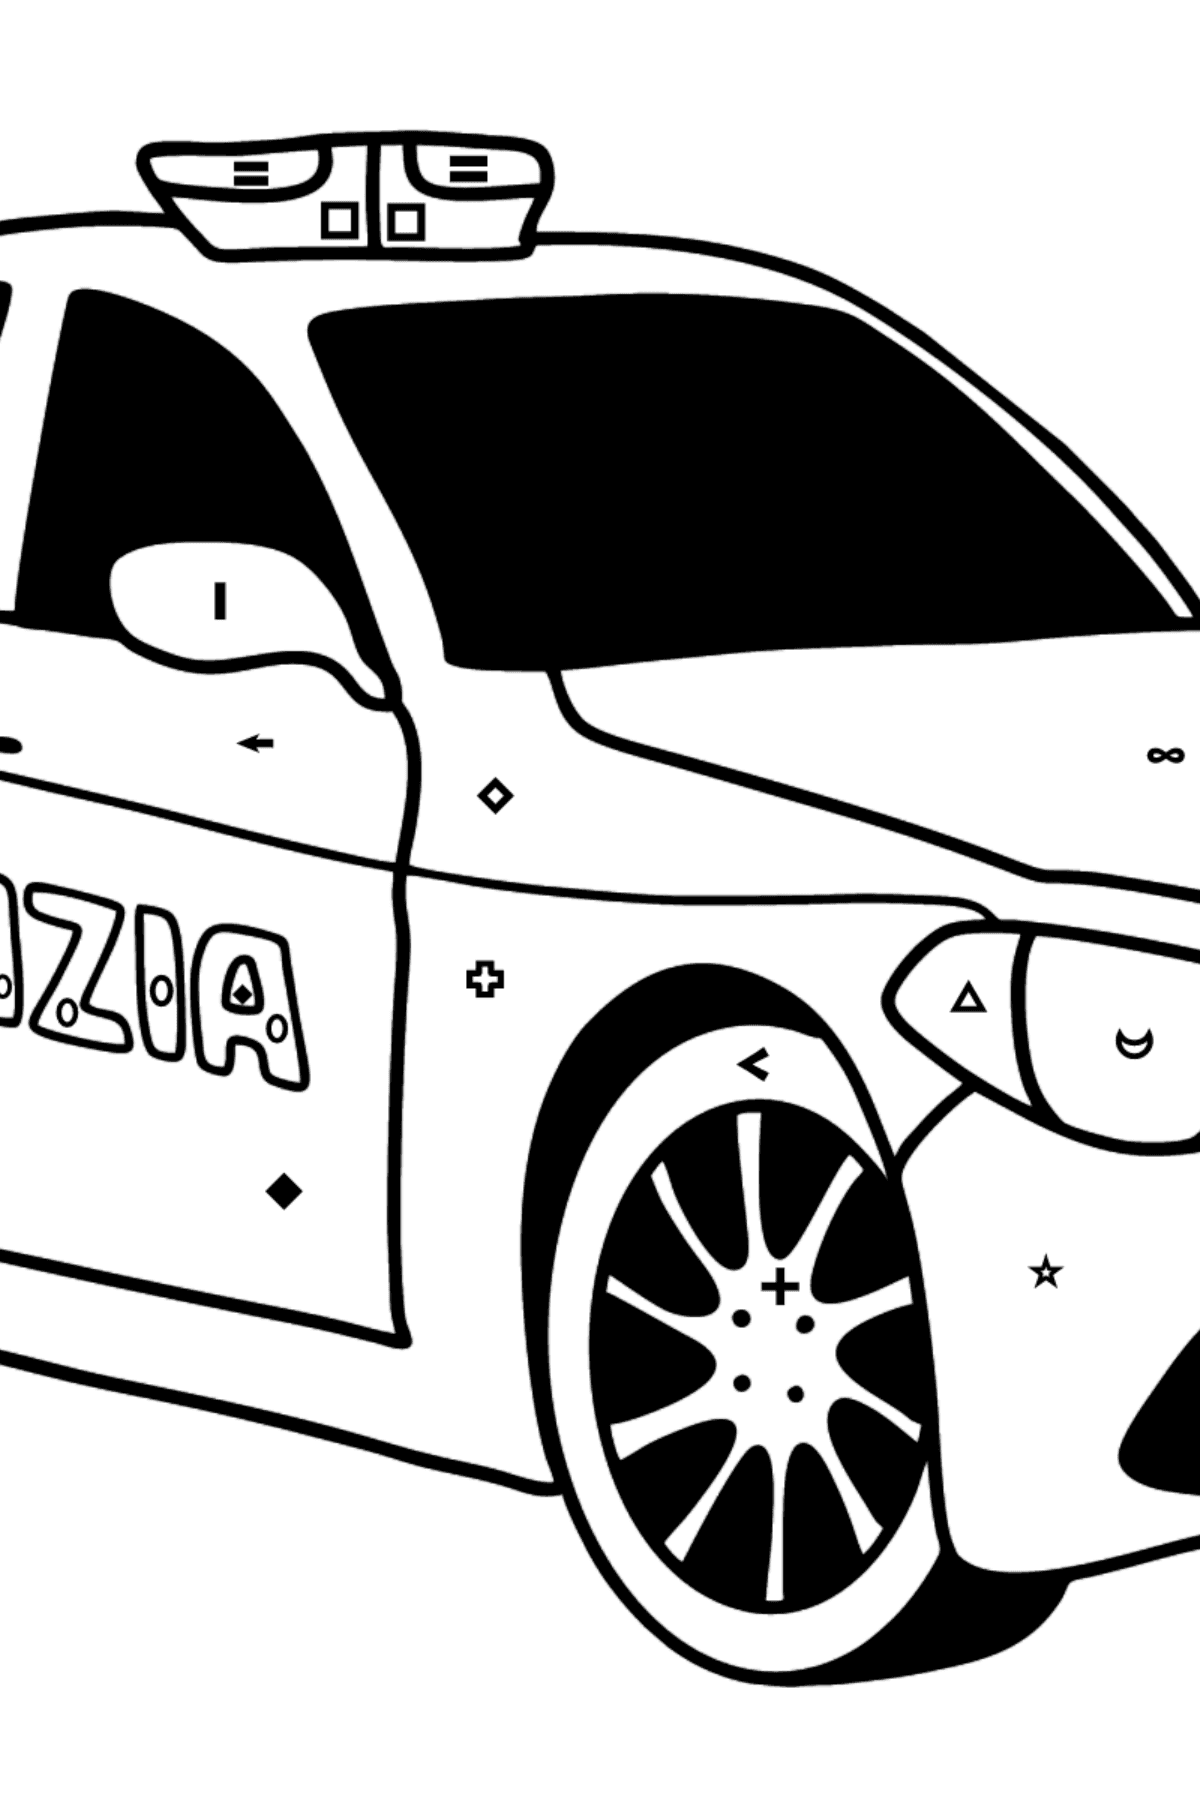 Police Car in Italy coloring page - Coloring by Symbols and Geometric Shapes for Kids